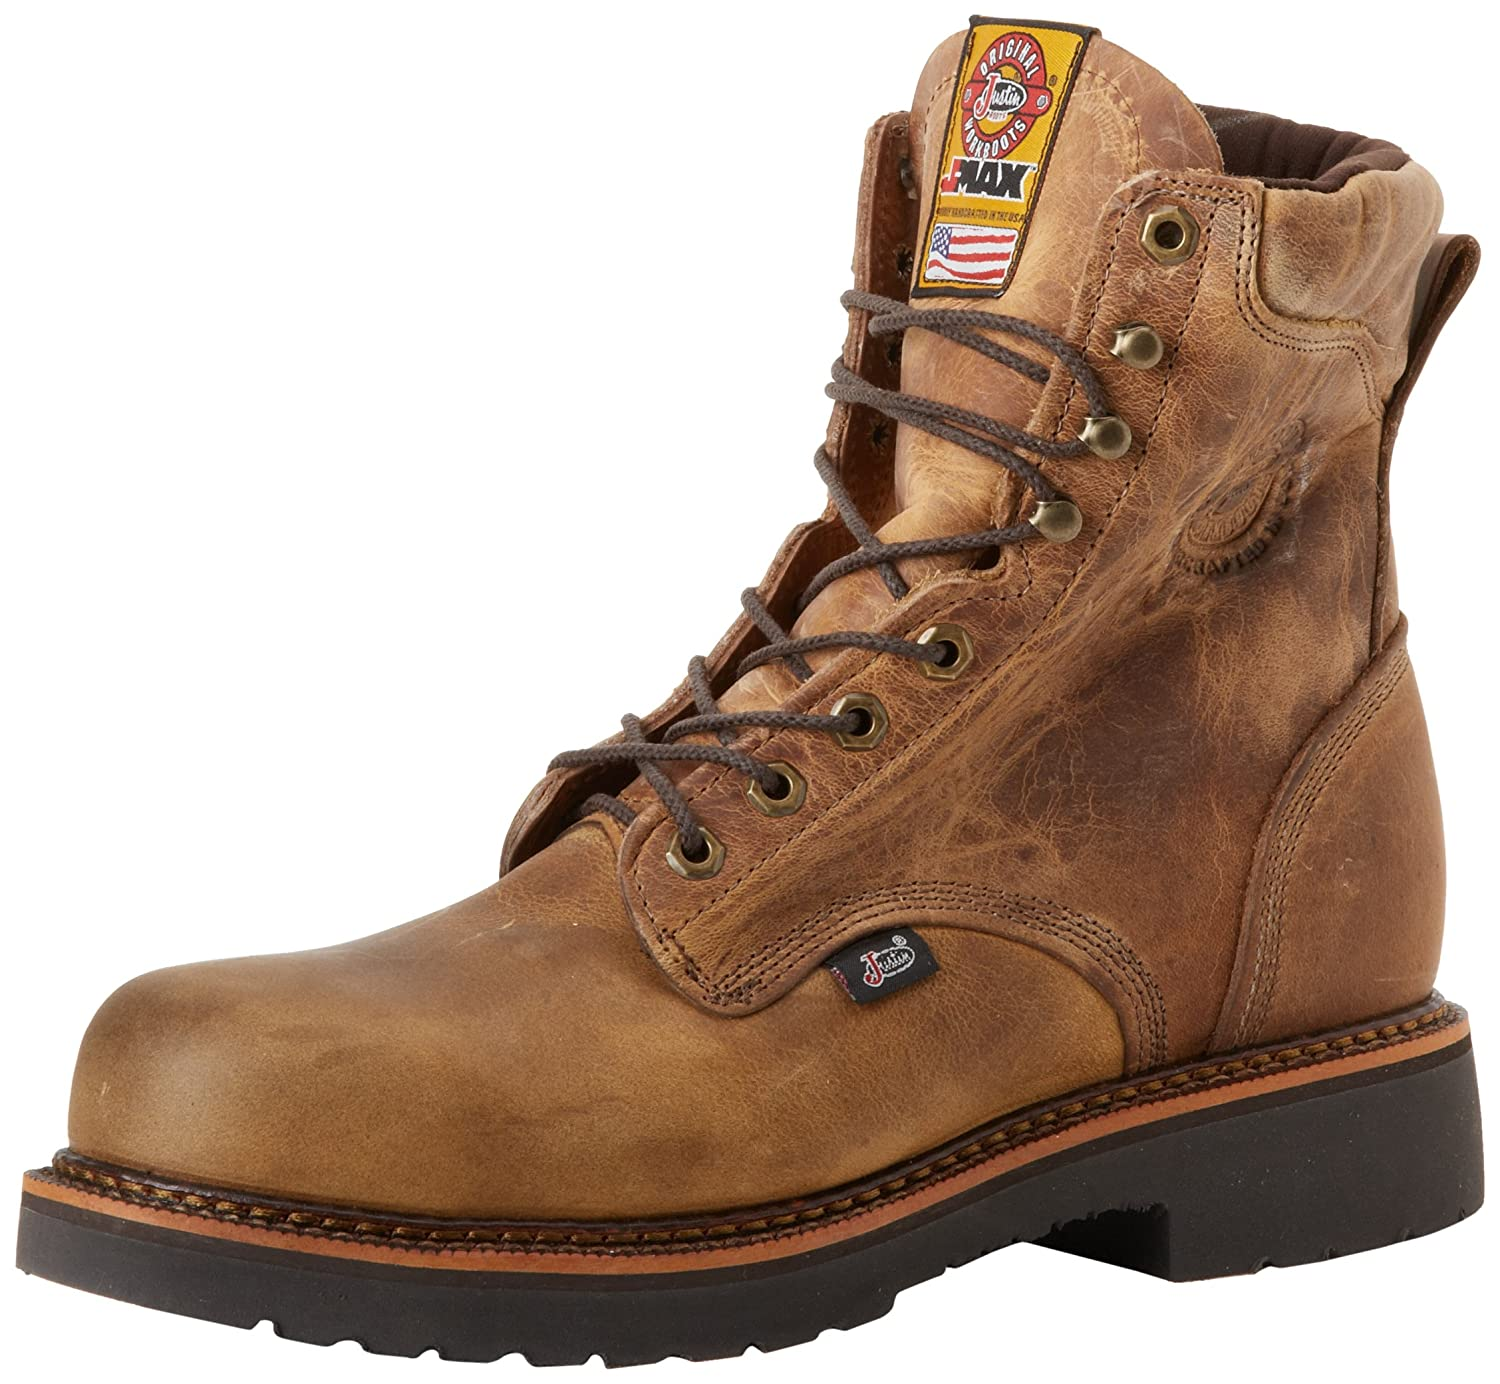 pdp boots comfortable en in csa mens tool s feet men abitibi slate m work ca the view comforter ultimate for steel p toe your black small